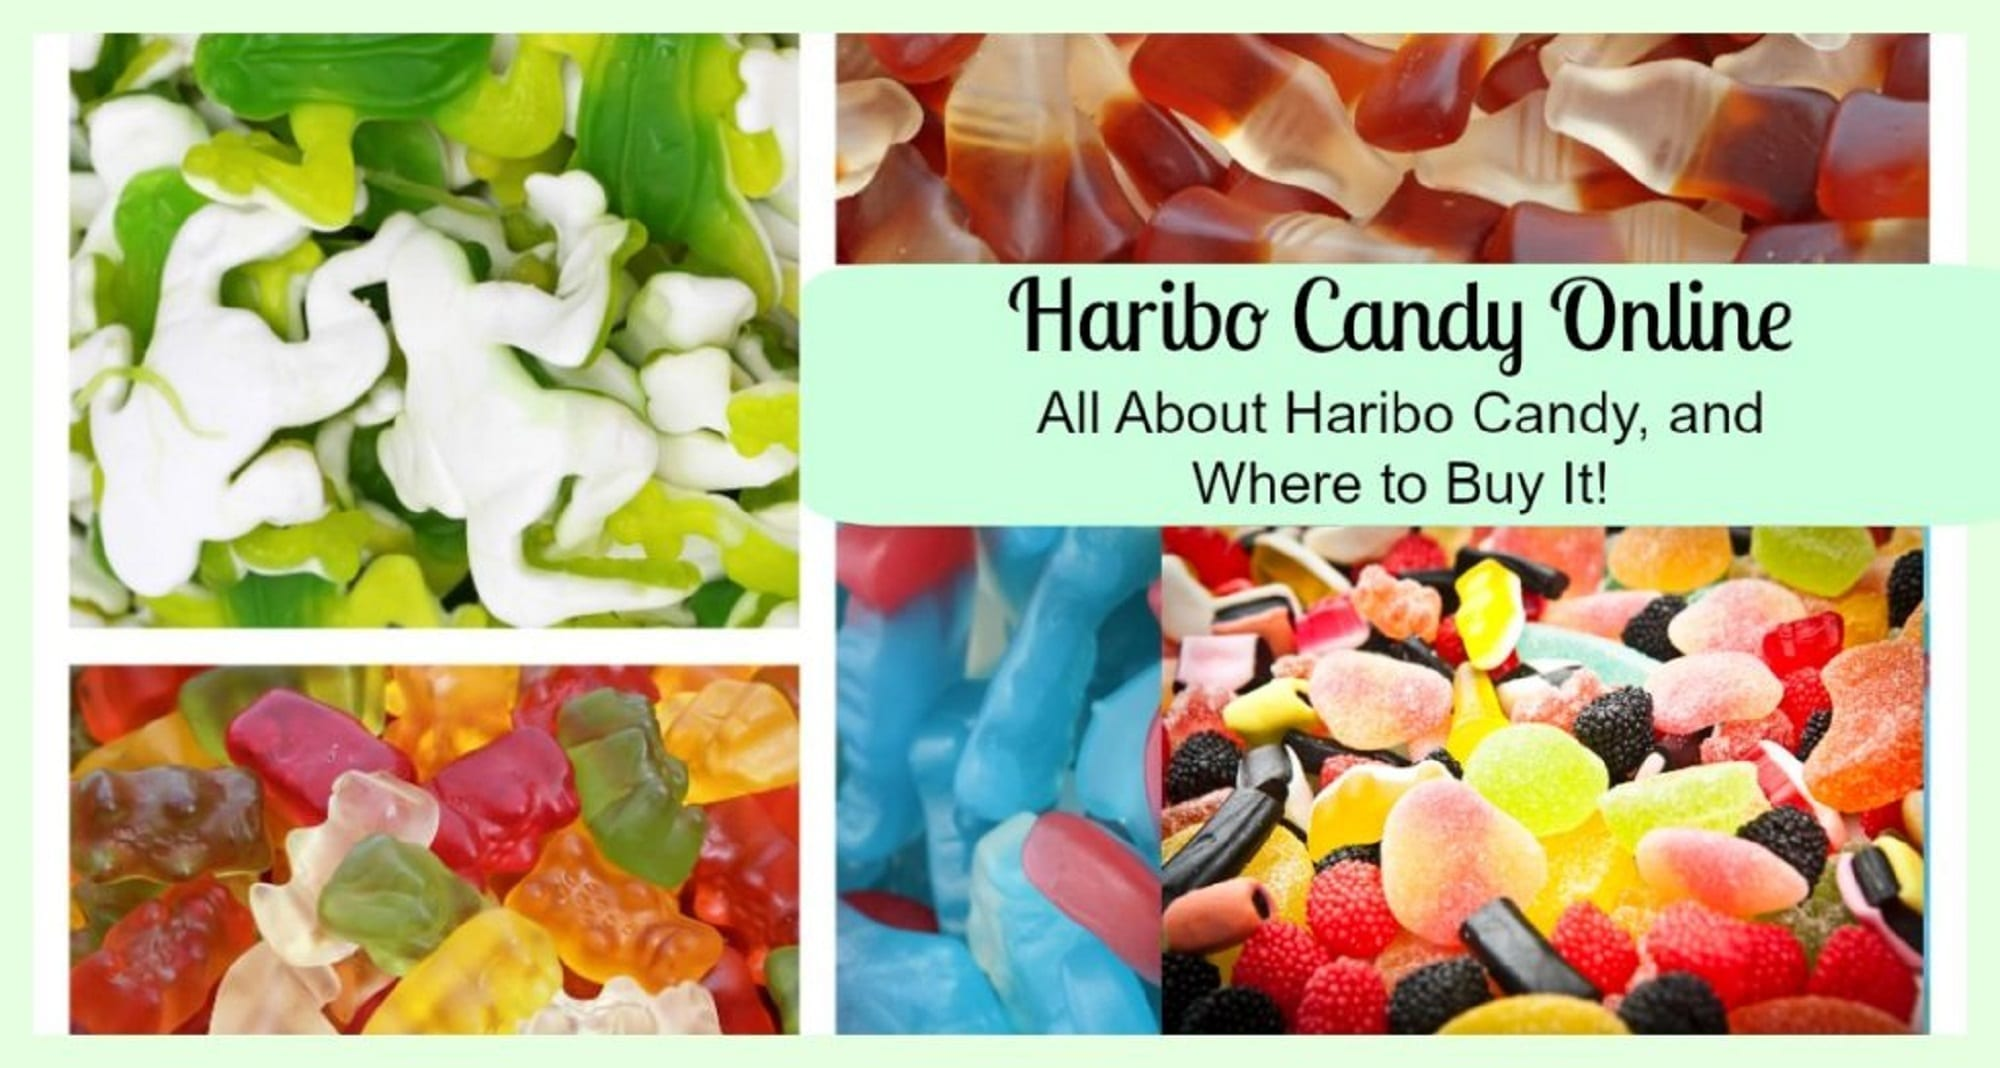 Haribo Candy Online- All About Haribo Candy, and Where to Buy It!